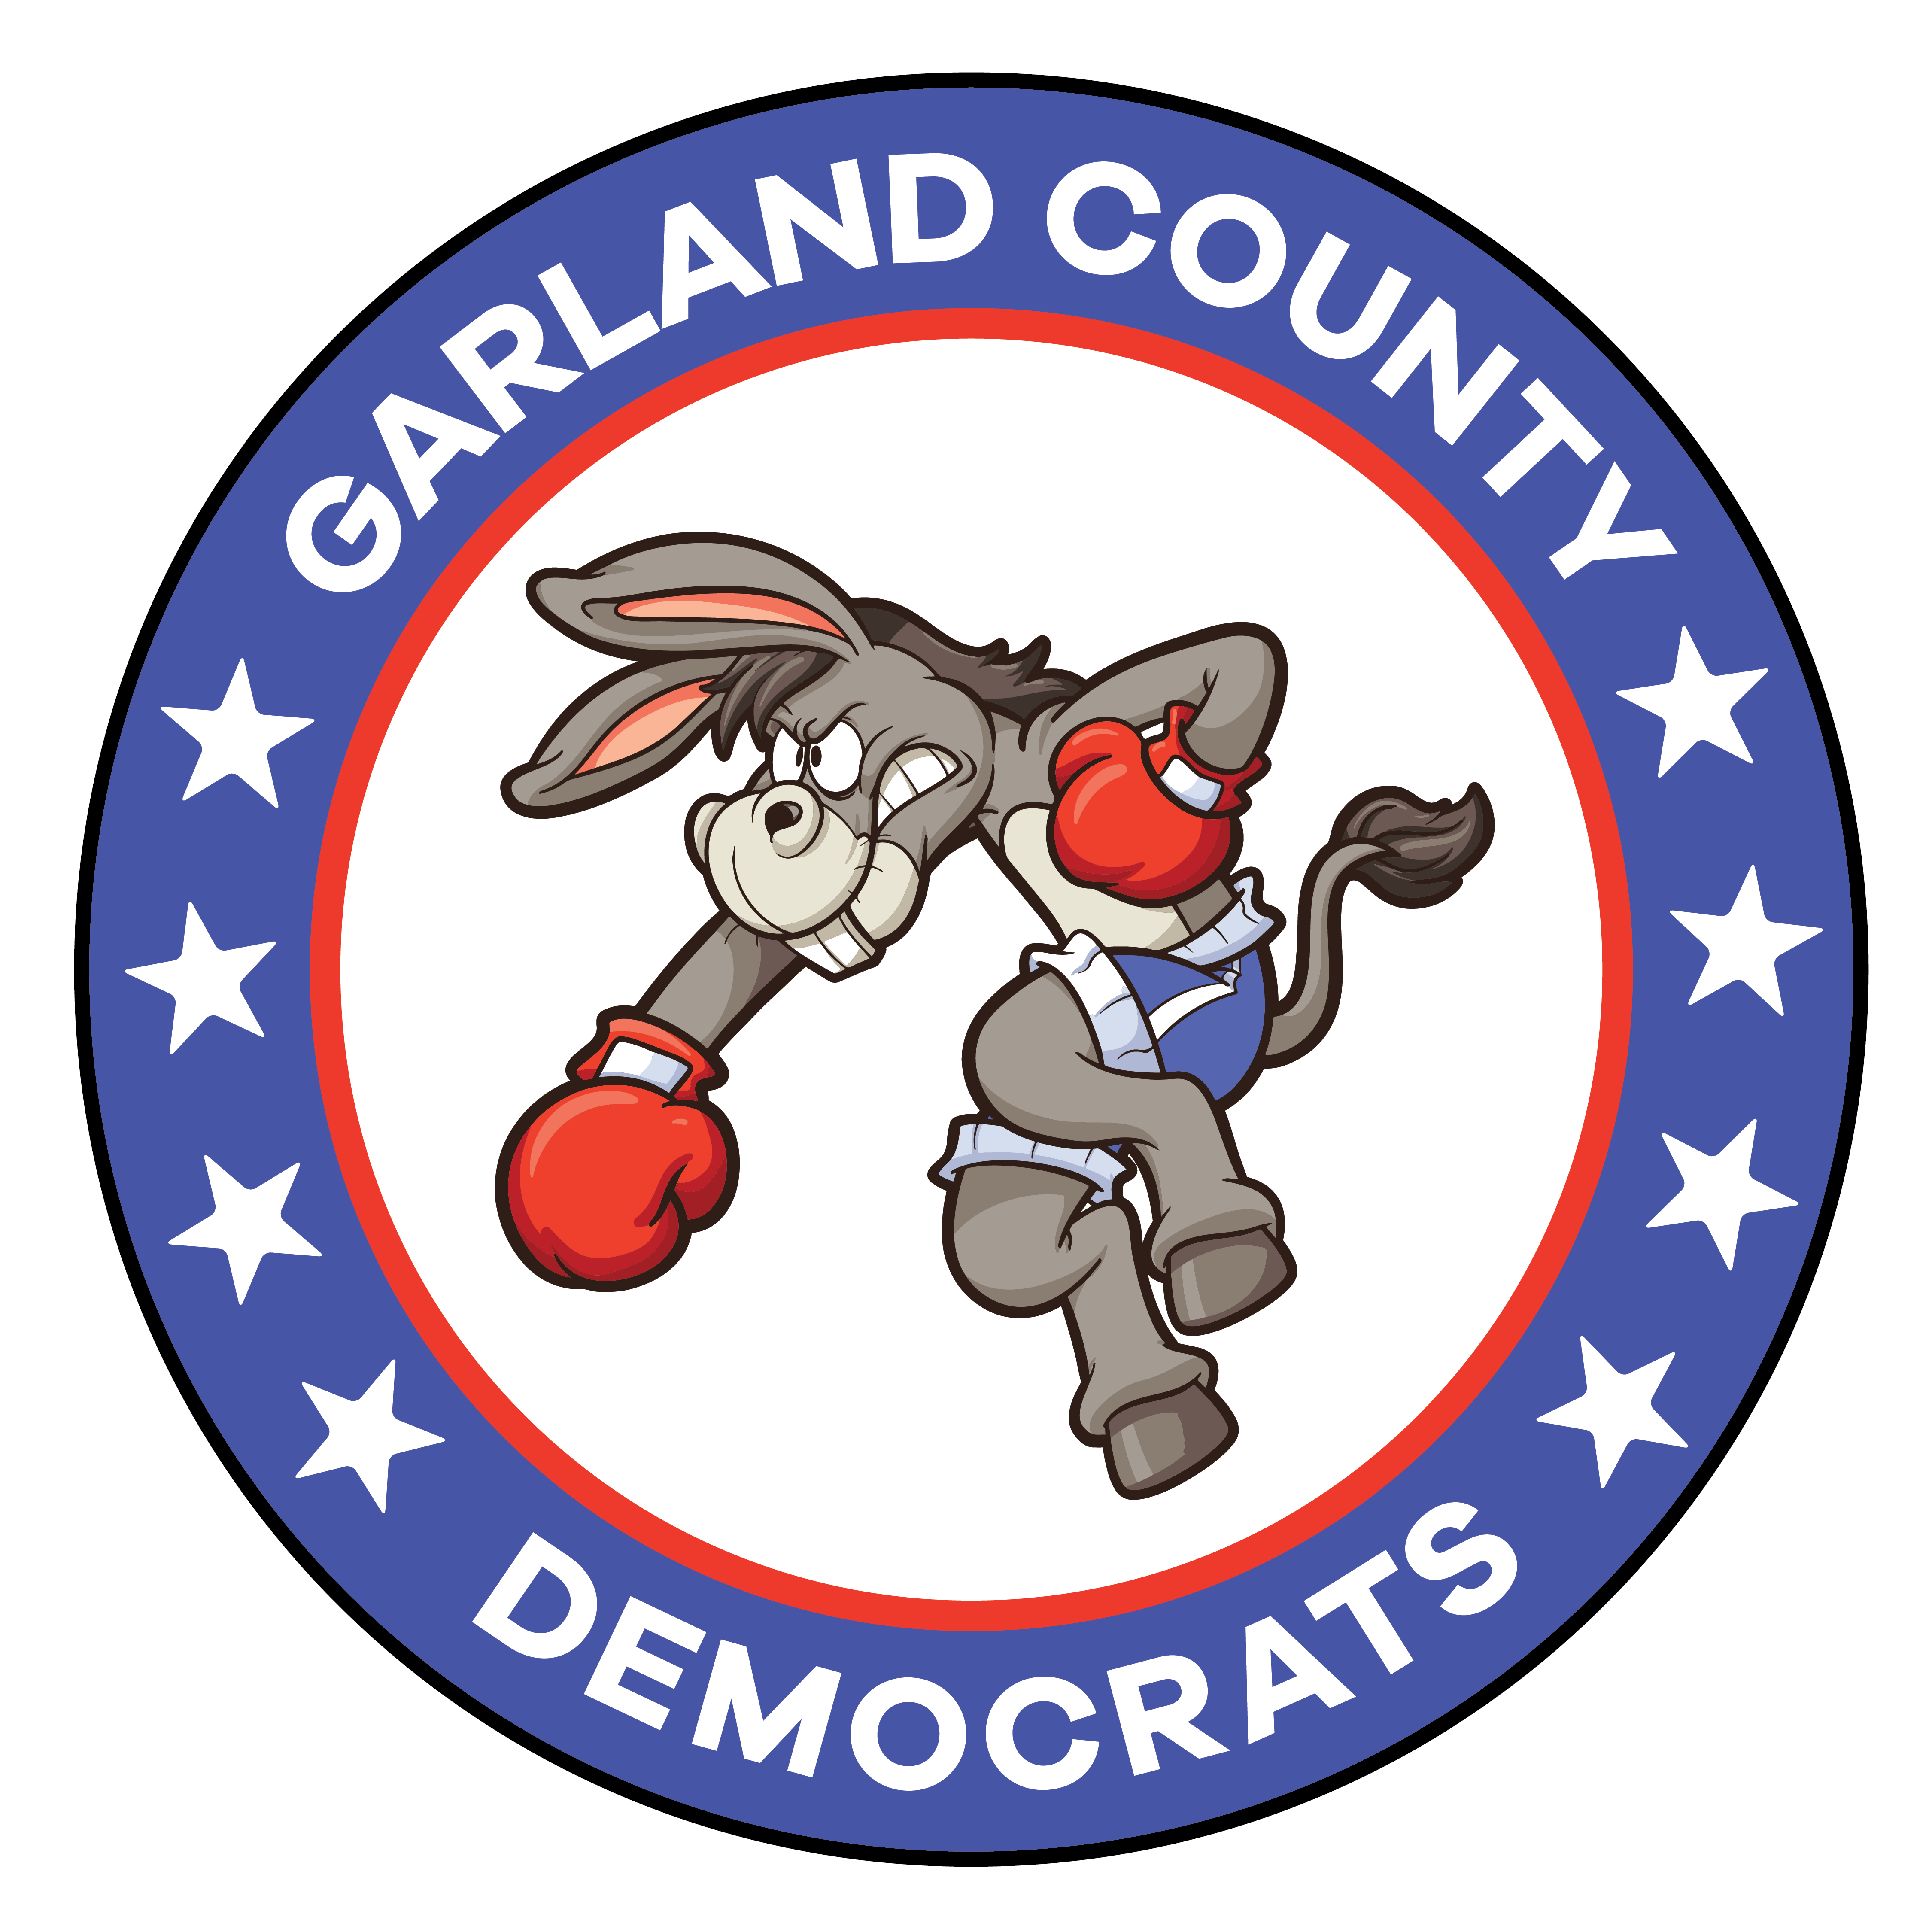 The Democratic Party of Garland County (AR)